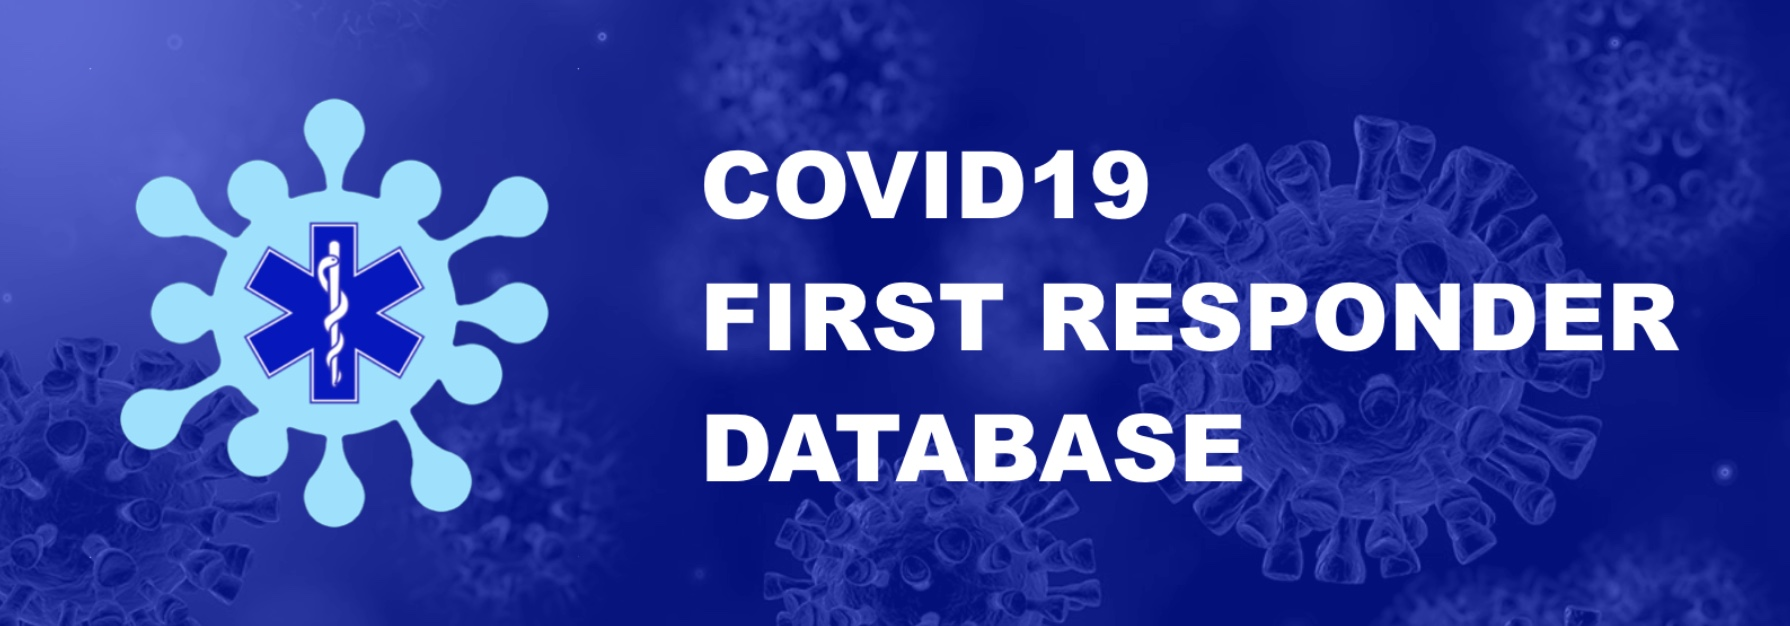 Logo First Responder Covid Data Base